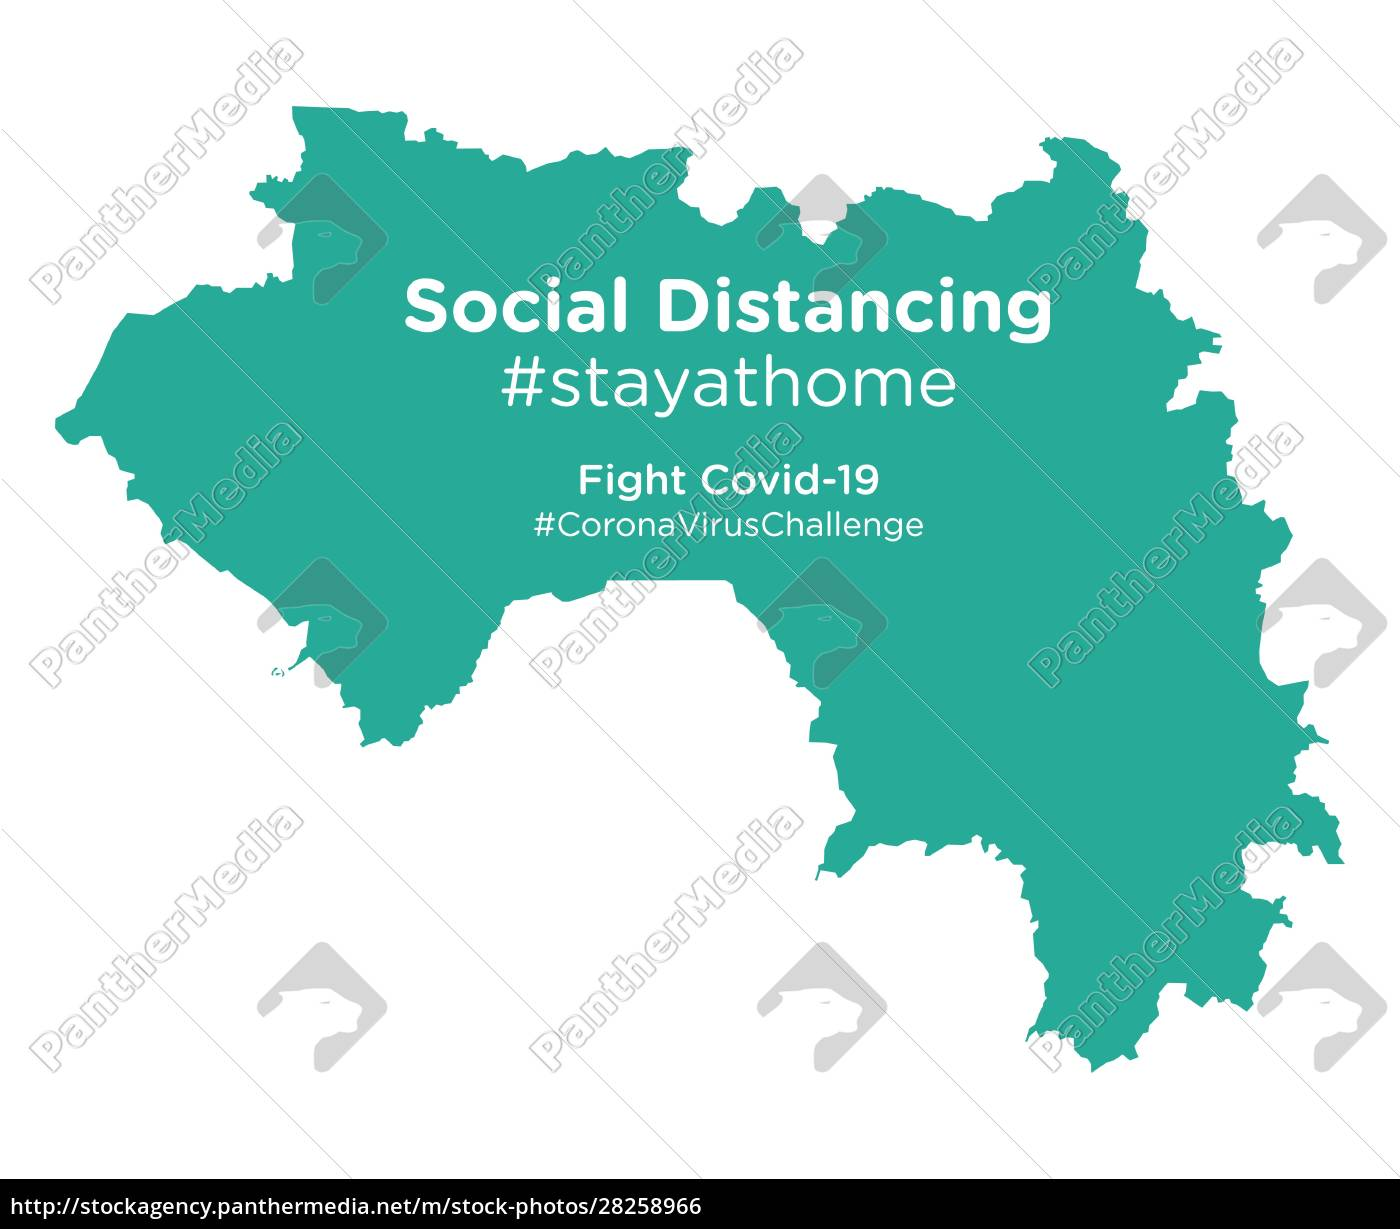 guinea, map, with, social, distancing, stayathome - 28258966